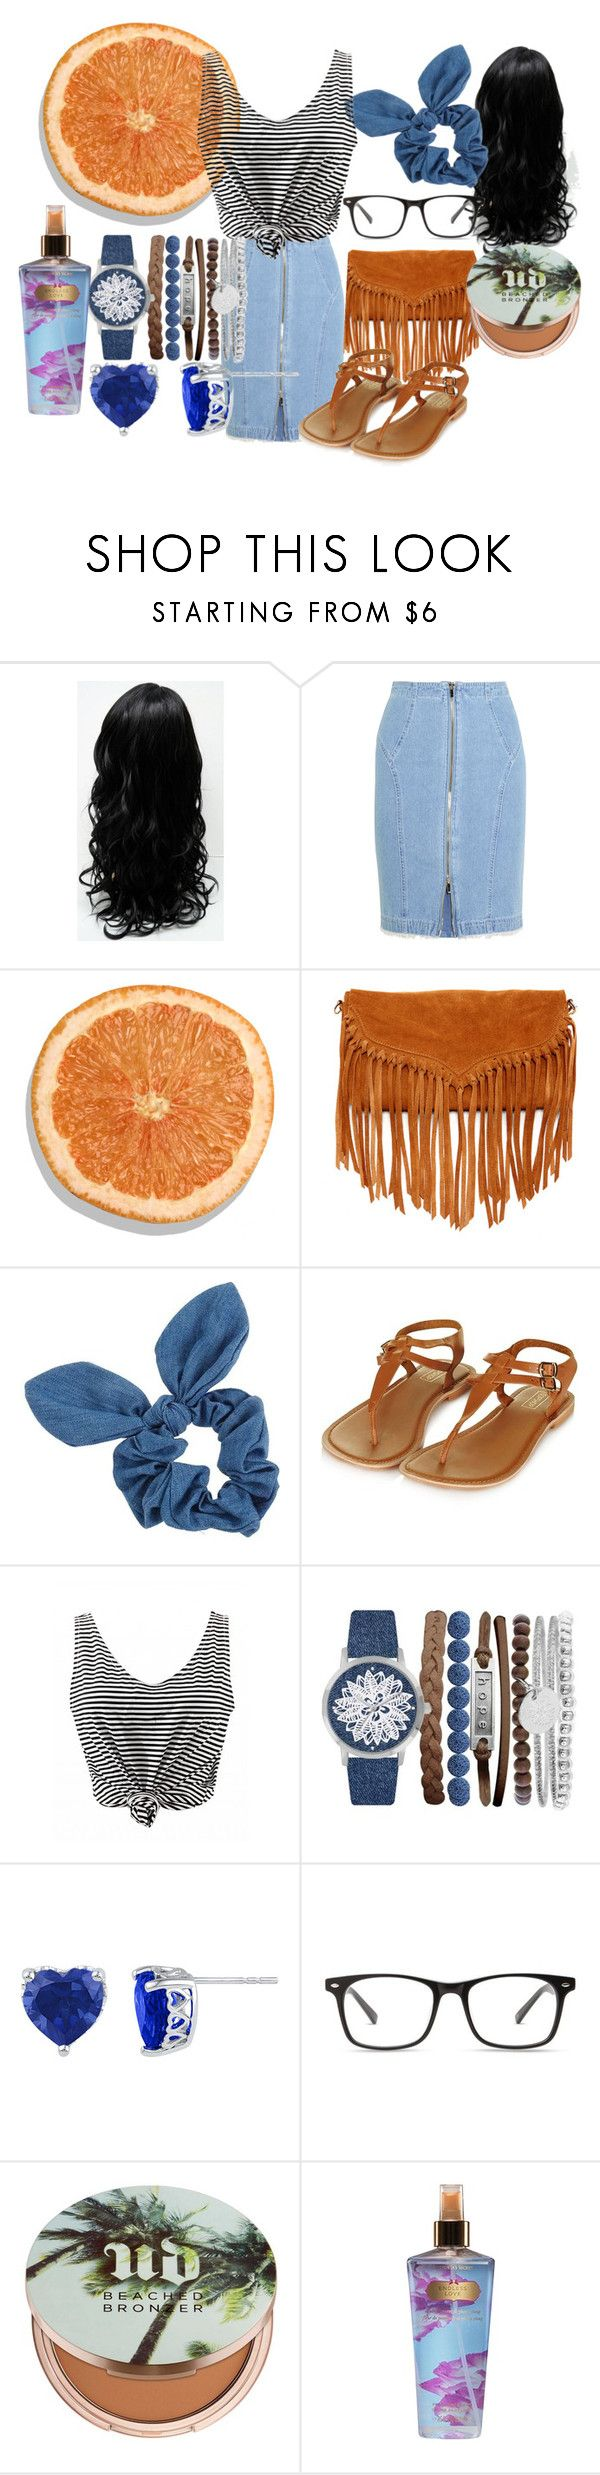 """""""Untitled #200"""" by frupapp on Polyvore featuring Steve J & Yoni P, SUSU, Dorothy Perkins, Topshop, Jessica Carlyle, Urban Decay and Victoria's Secret"""